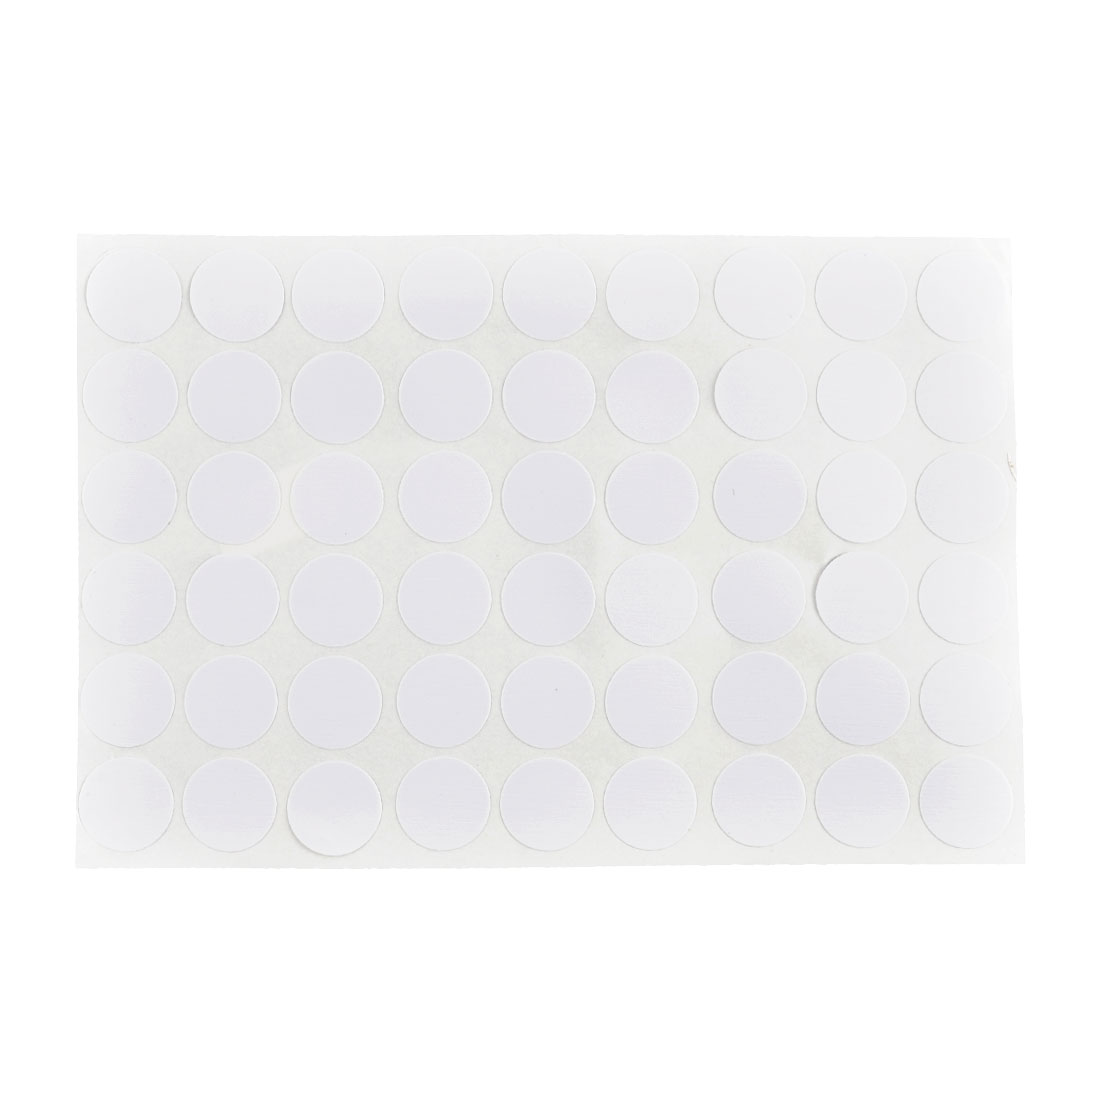 Furniture Self-adhesive Screw Hole Embossed Stickers Covers Sheet White 54 in 1